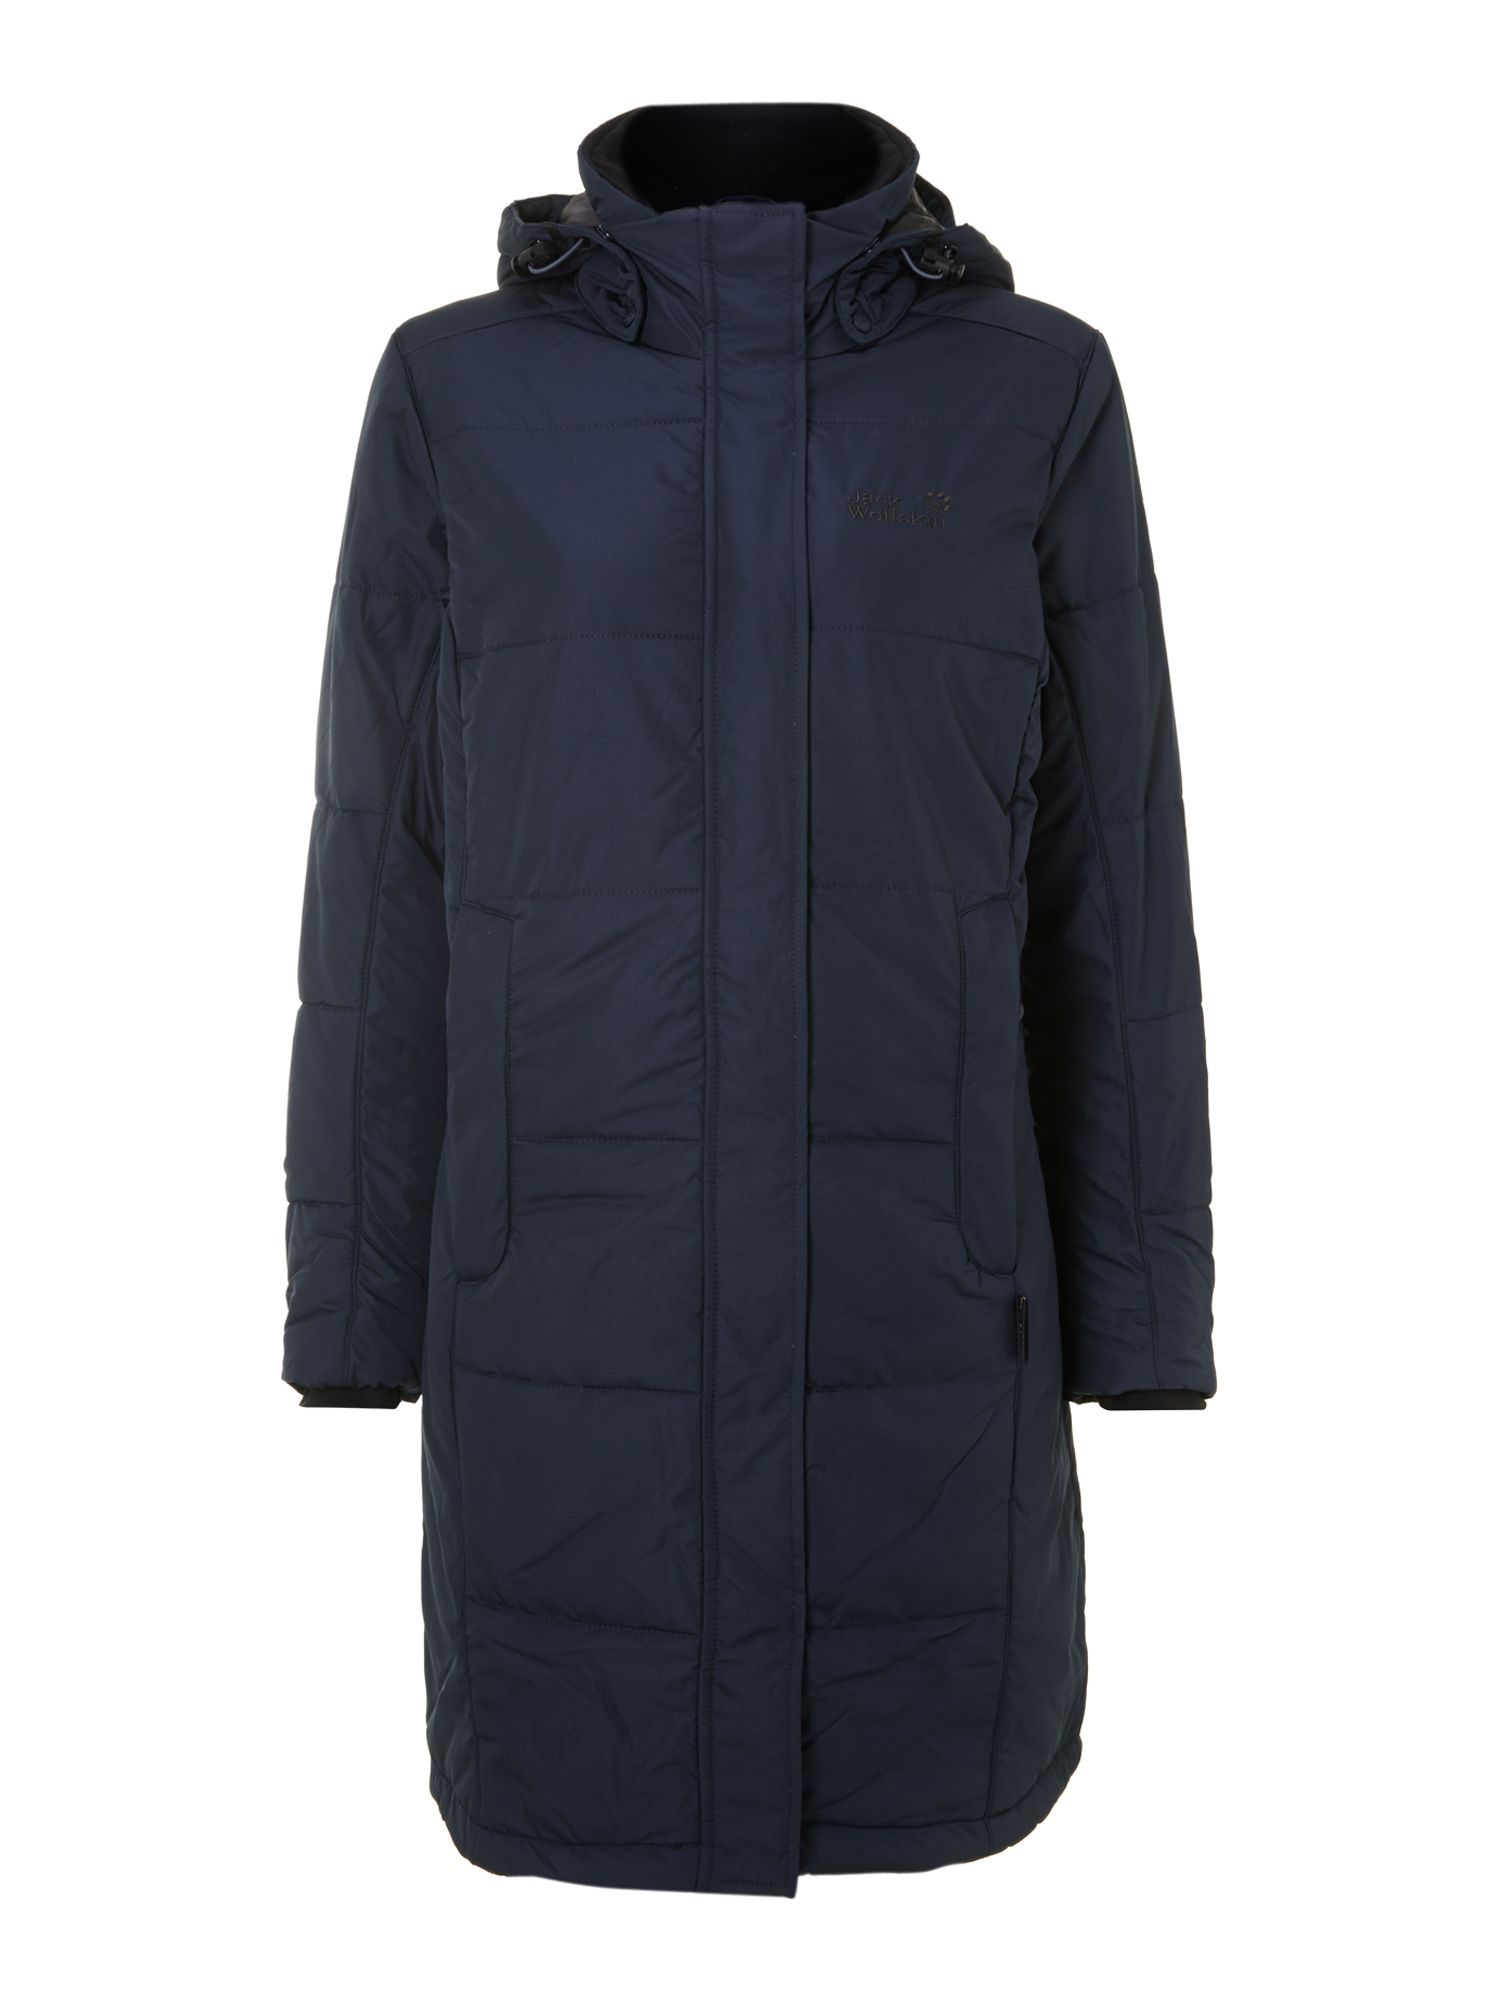 Iceguard long padded jacket